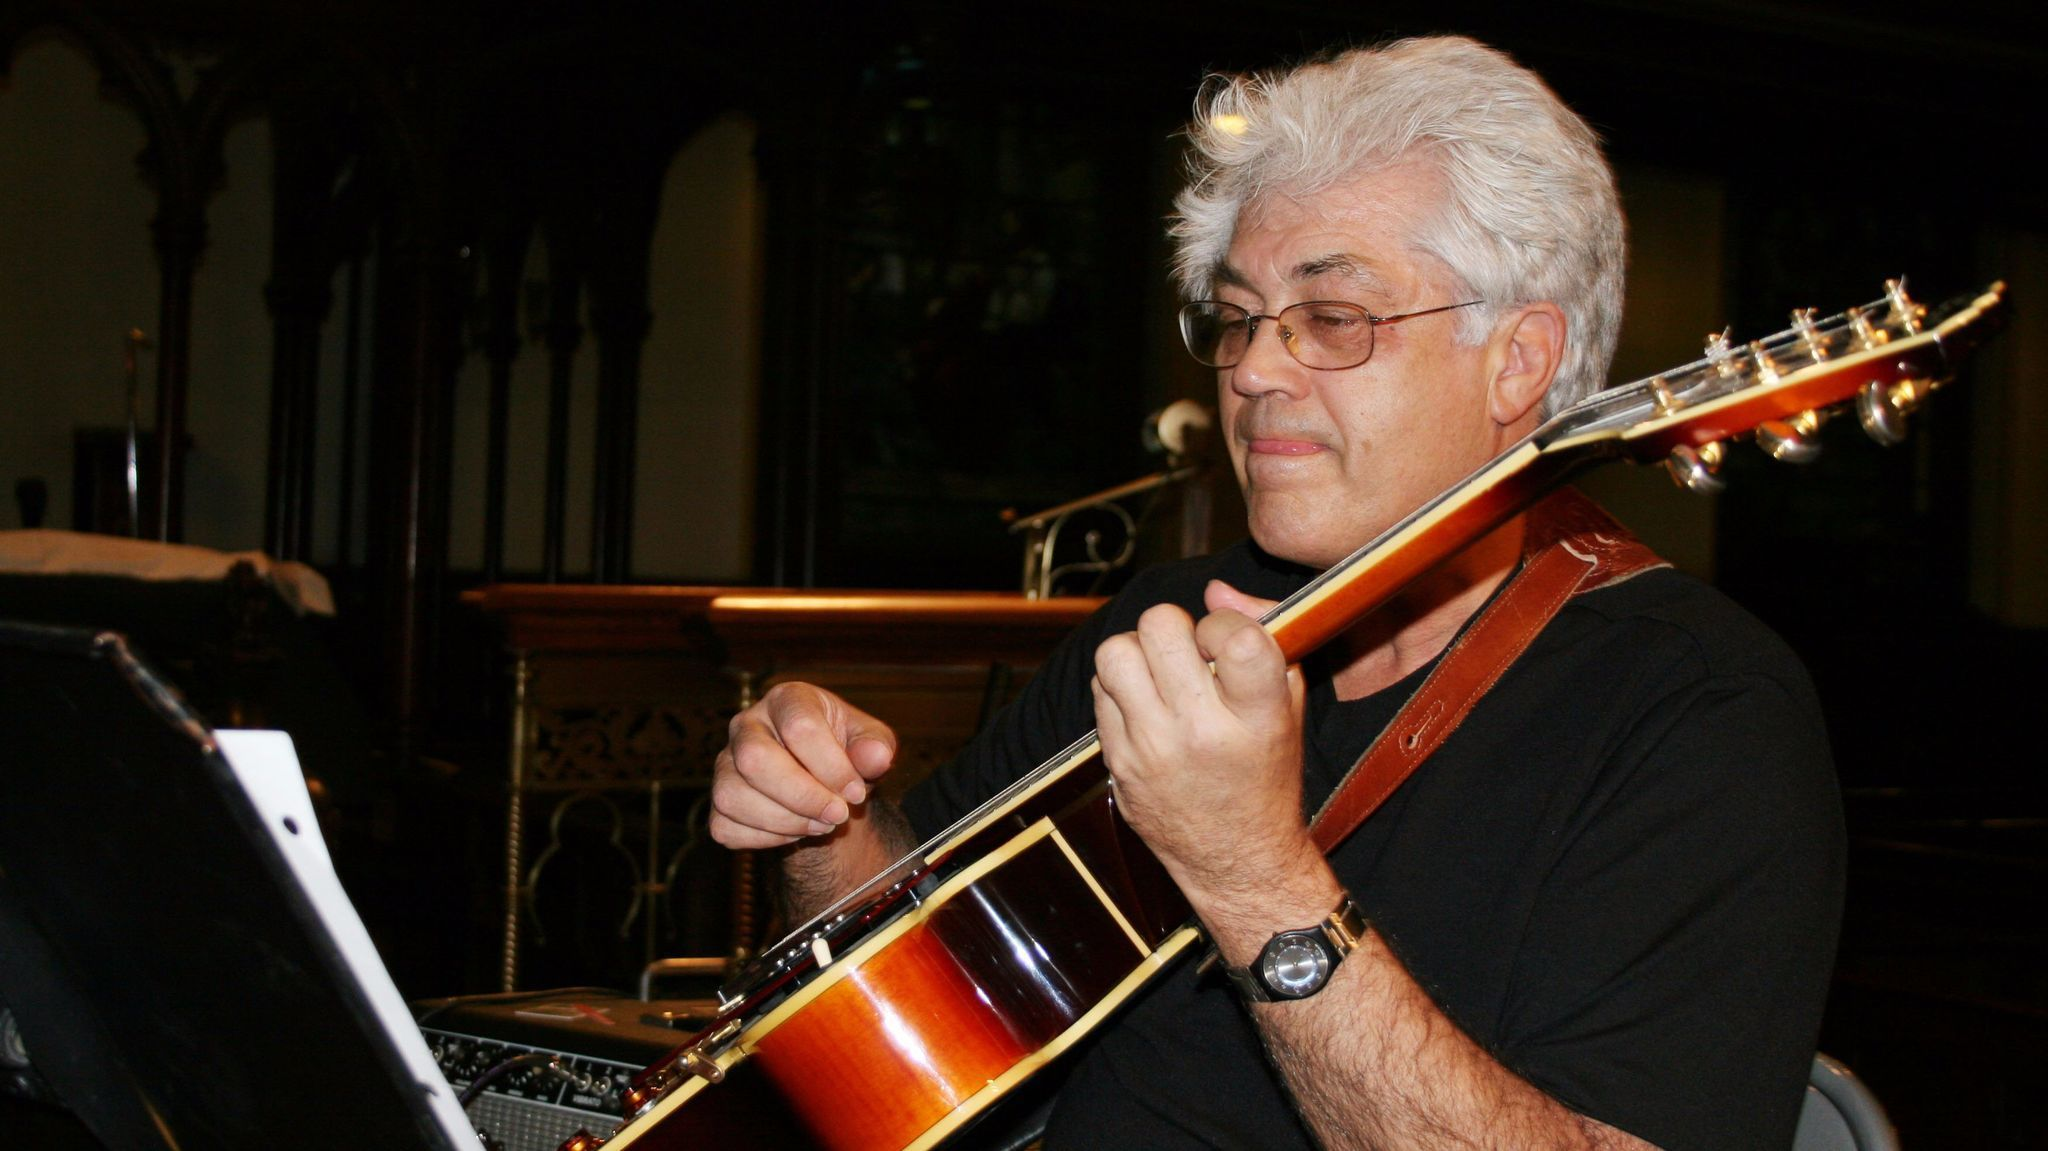 larry coryell dead at 73 guitar great played memorably in san diego over the years the san. Black Bedroom Furniture Sets. Home Design Ideas